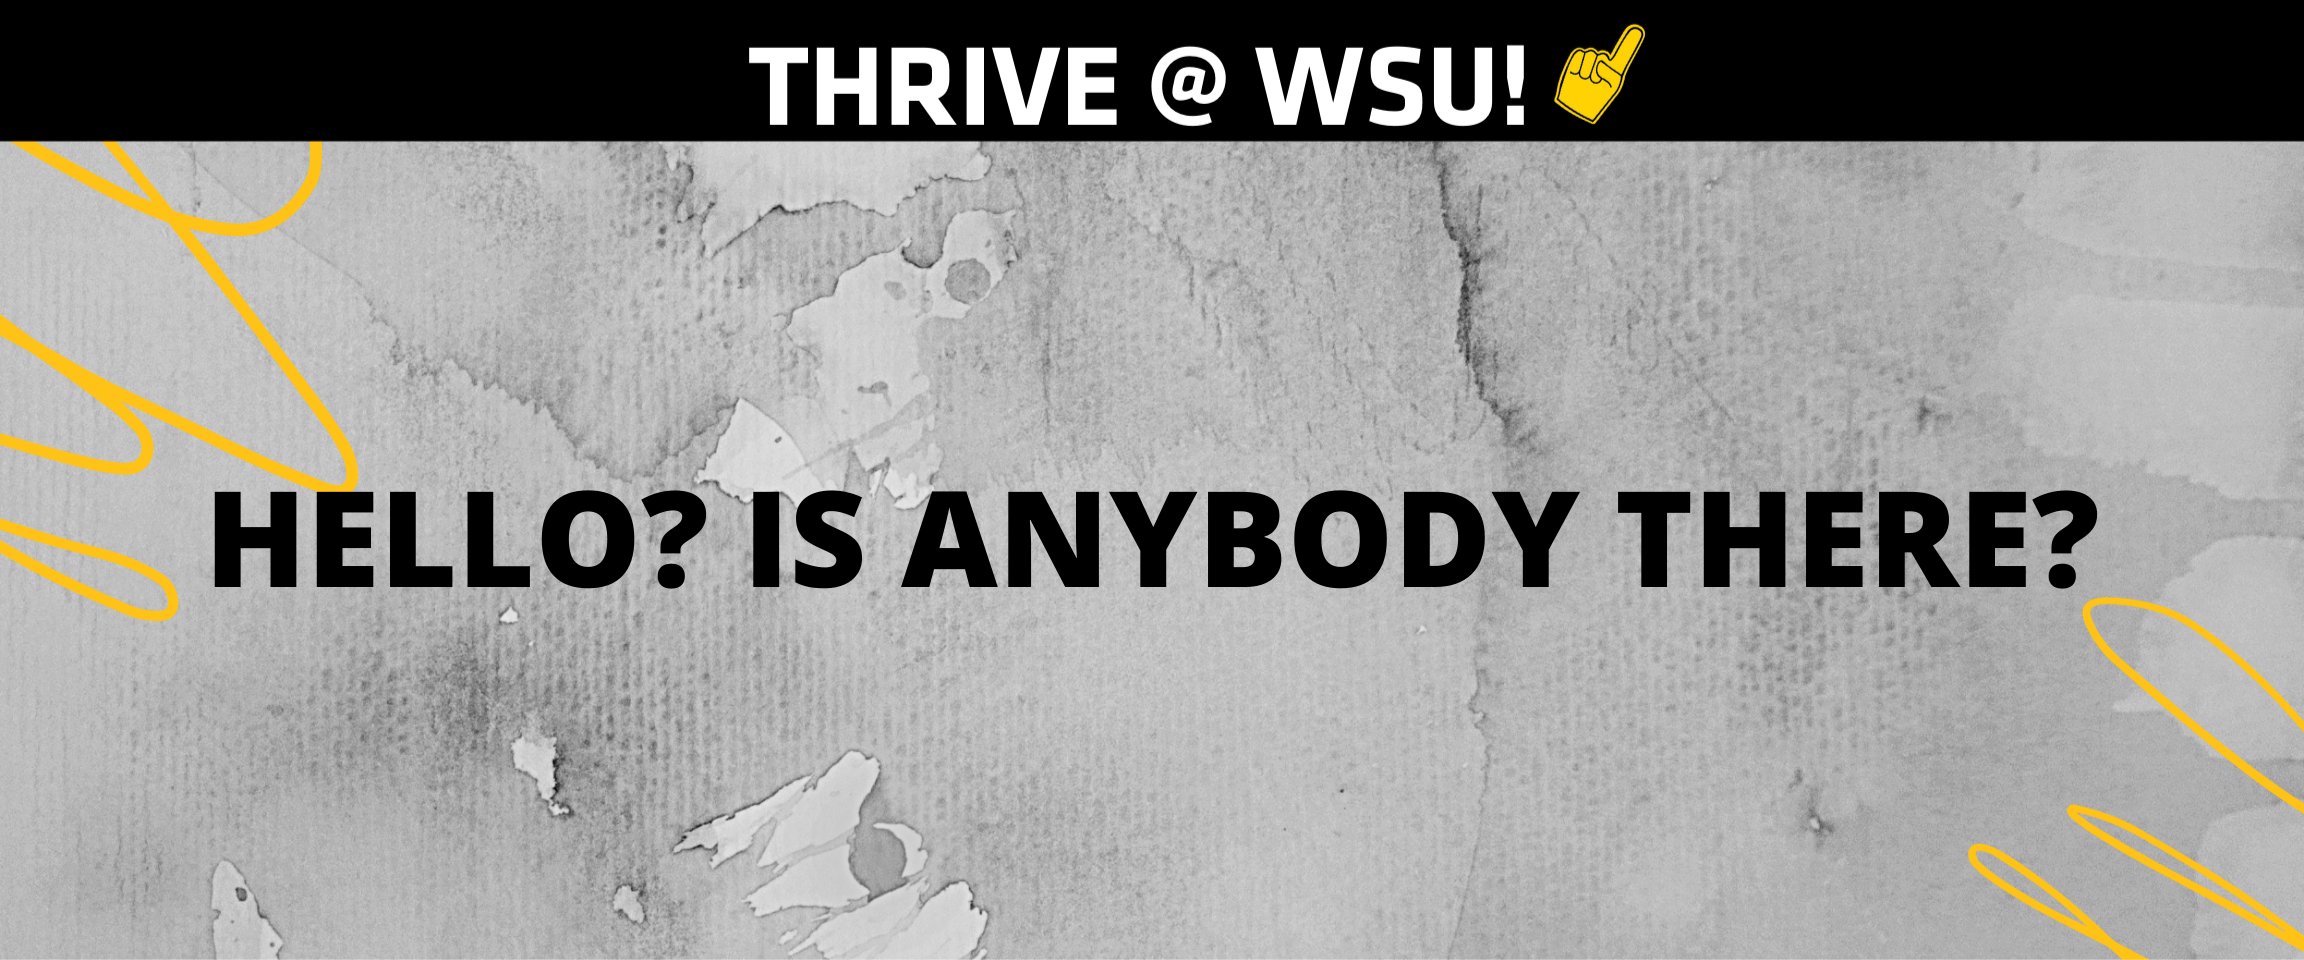 """Graphic featuring text 'Thrive @WSU. Hello? Is anybody there?"""""""